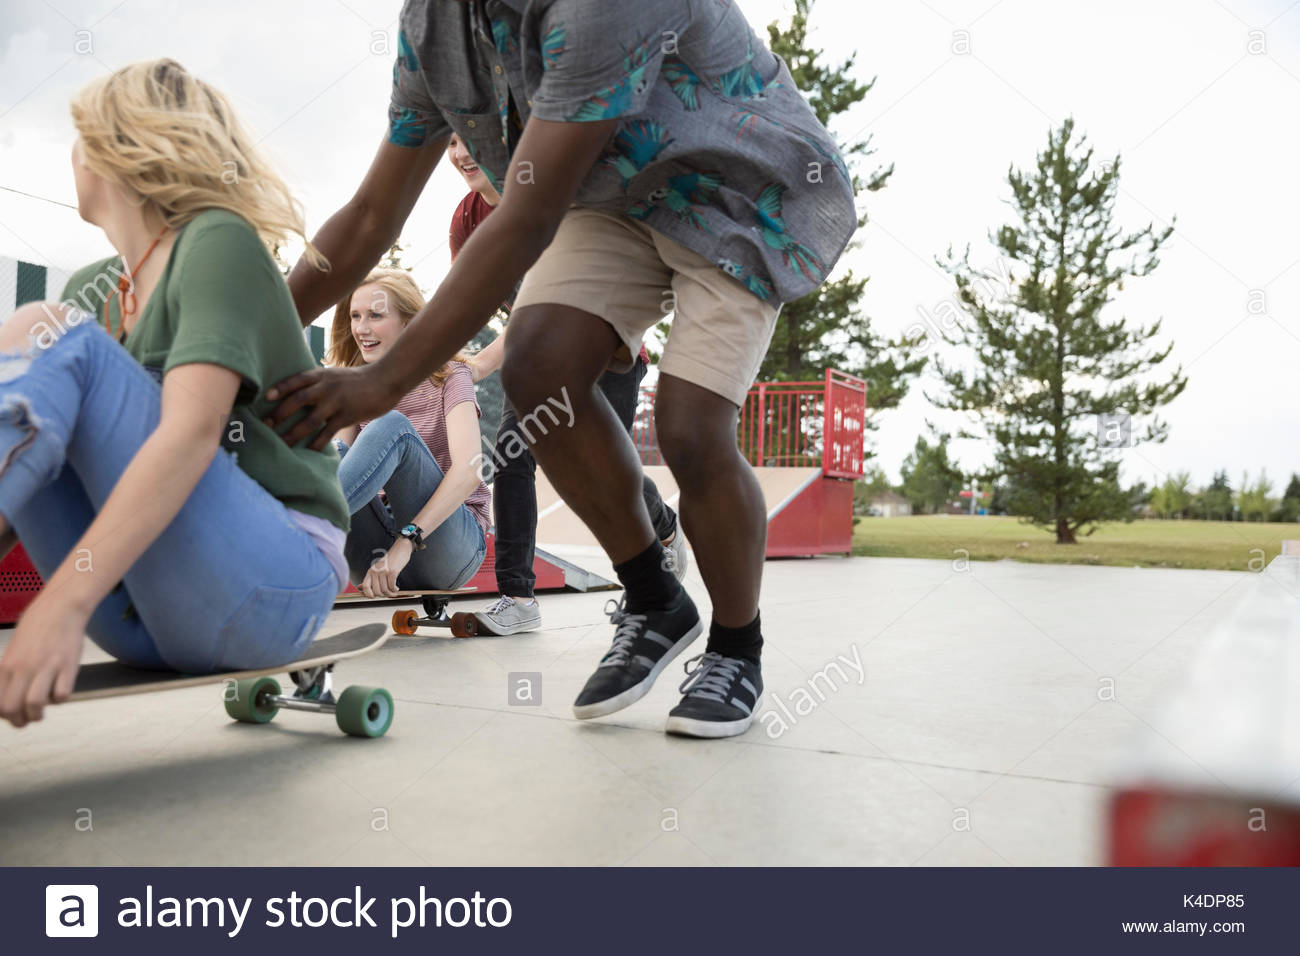 Teenage friends playing, pushing skateboards in skate park - Stock Image